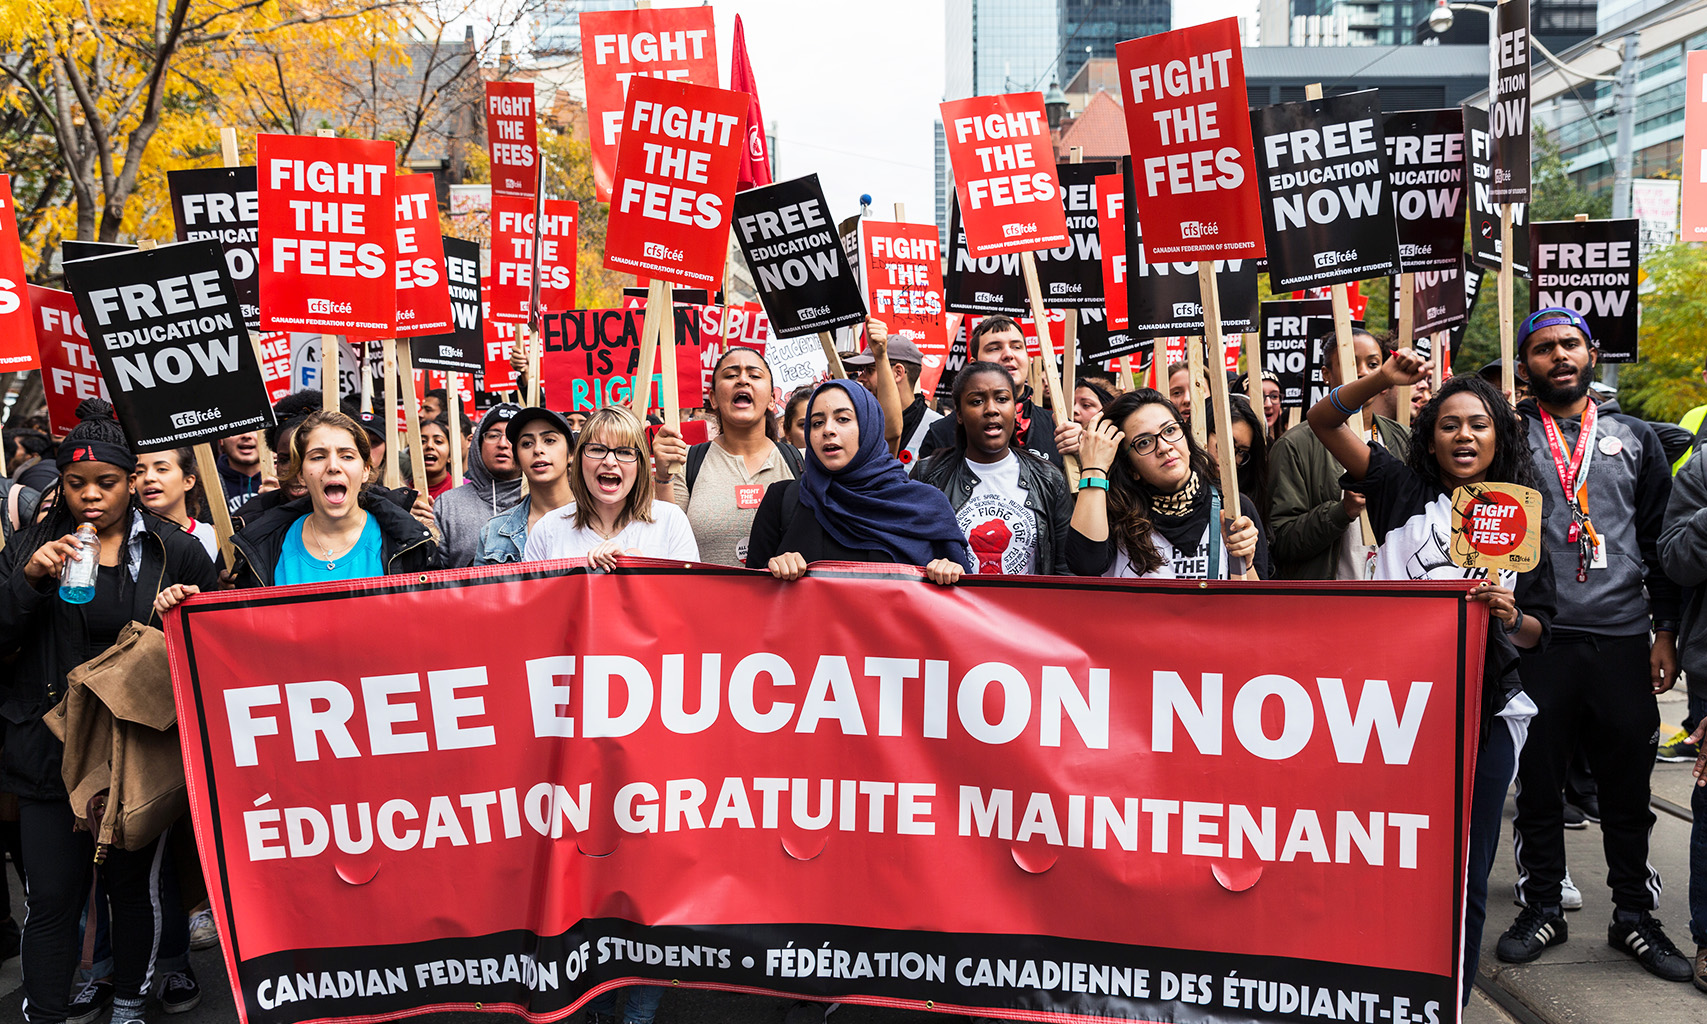 Canadian Federation of Students marching for their 'Fight the Fees' campaign. (Image:Ryersonian/Hongen Nar)